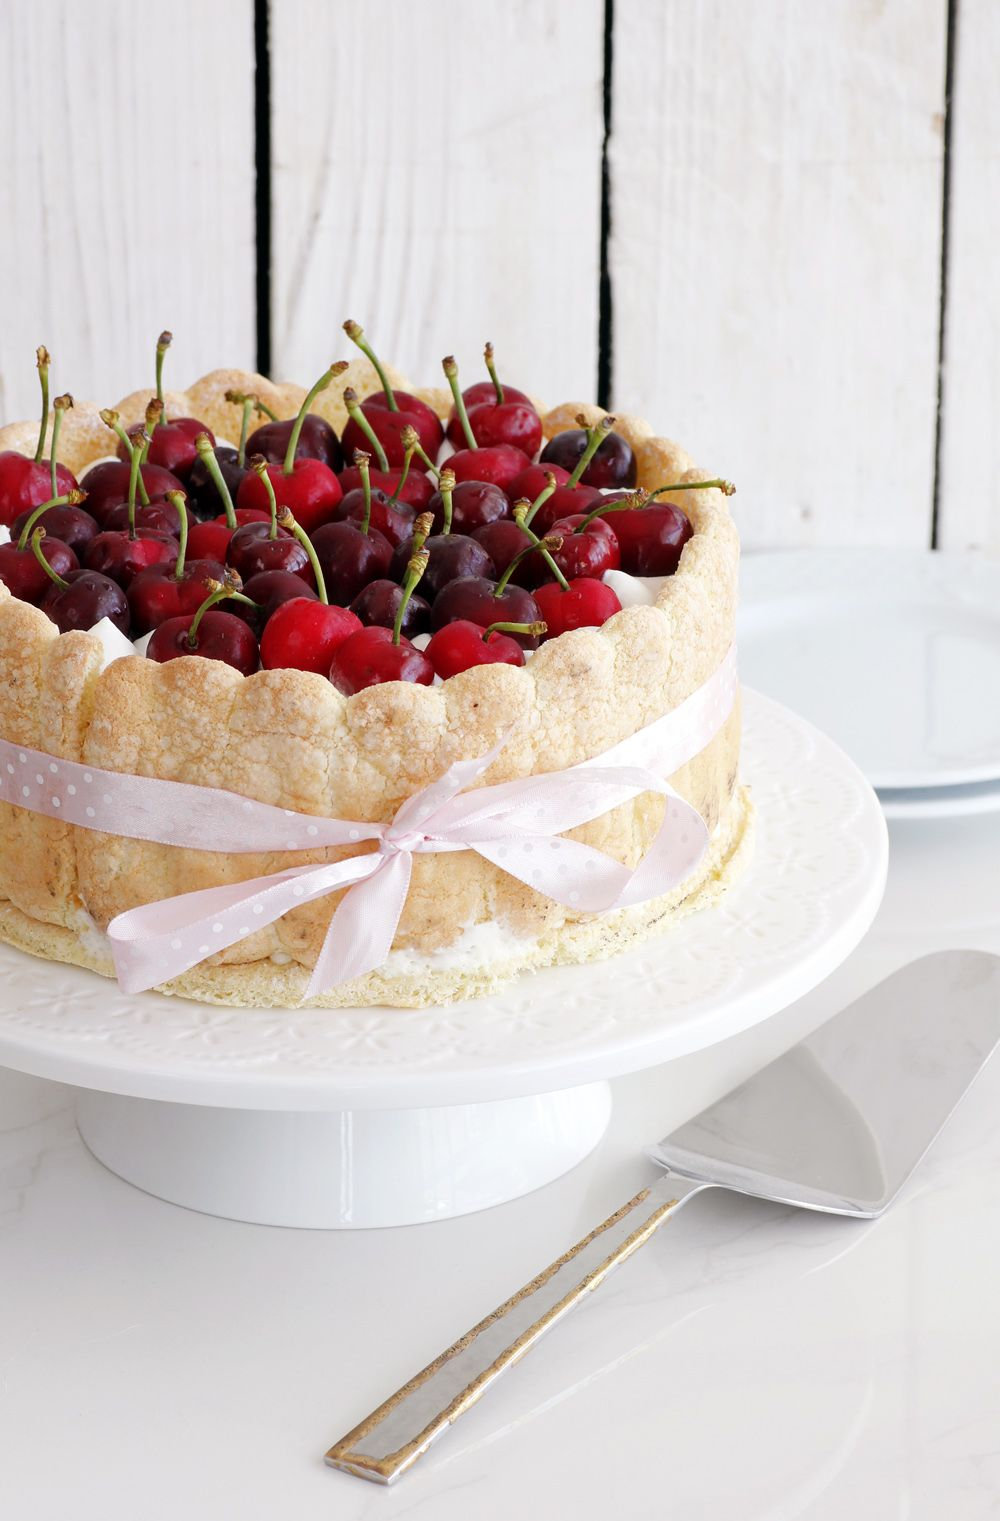 Cherry Charlotte Cake with Mascarpone Mousse